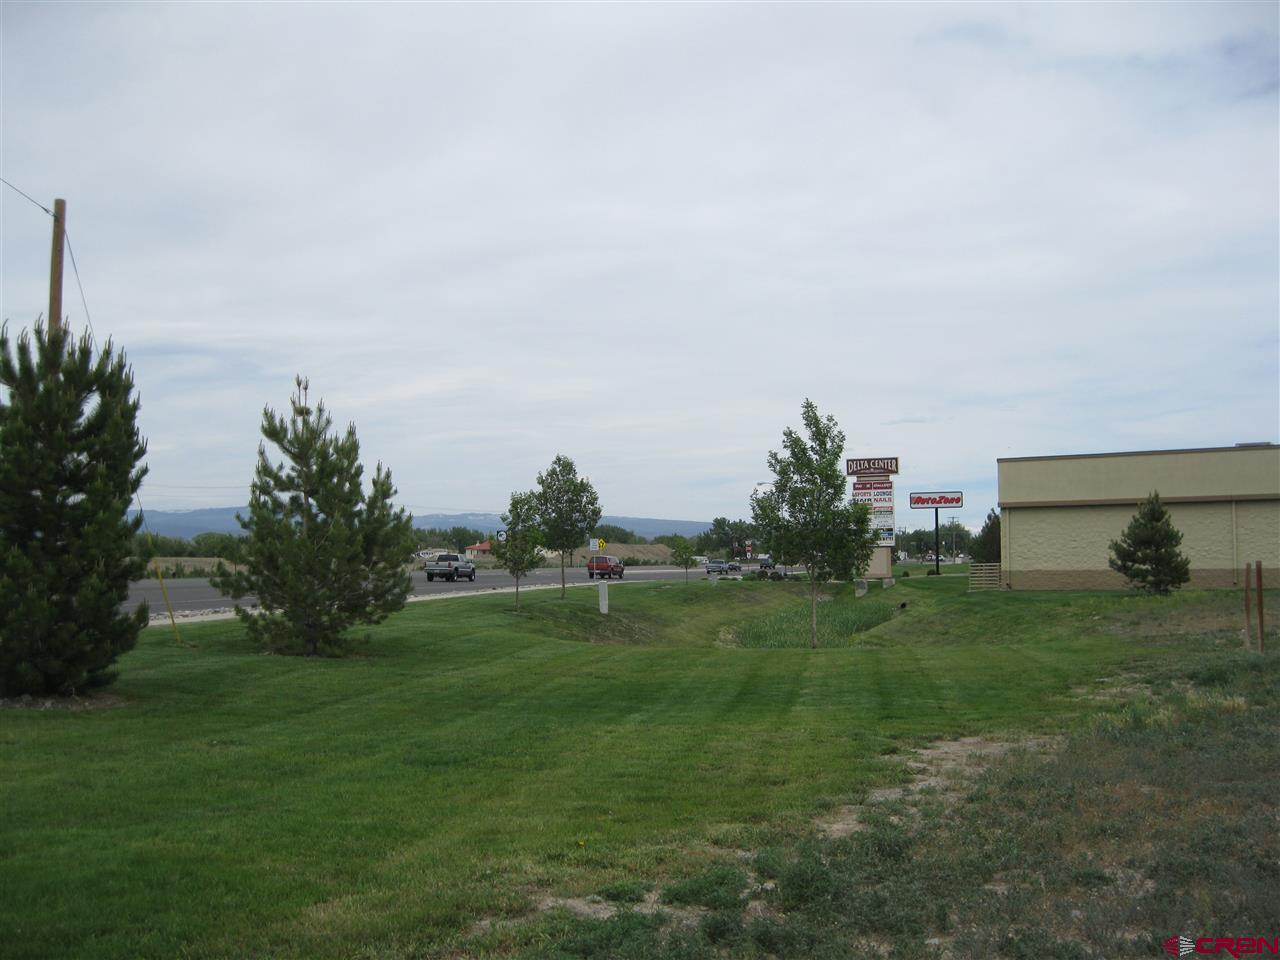 High Visibility Commercial Lot Vacant lot located in the heart of Delta's commercial hub with approximately 191 feet of highway frontage and 14,000+ daily vehicles. Situated in the Delta Center, in front of the Valley View Plaza adjacent to Auto Zone. The Delta Center is one of only two similar shopping centers within a 20-mile area. Just off Highway 92 near Walmart and Safeway, it is centrally located for shoppers from Delta and the surrounding communities. All utilities are to the lot line. Lot 1 has available drive-thru potential for quick service restaurant and highway signage.  Possible owner carry, build to suit, land lease or joint venture with qualified buyer.